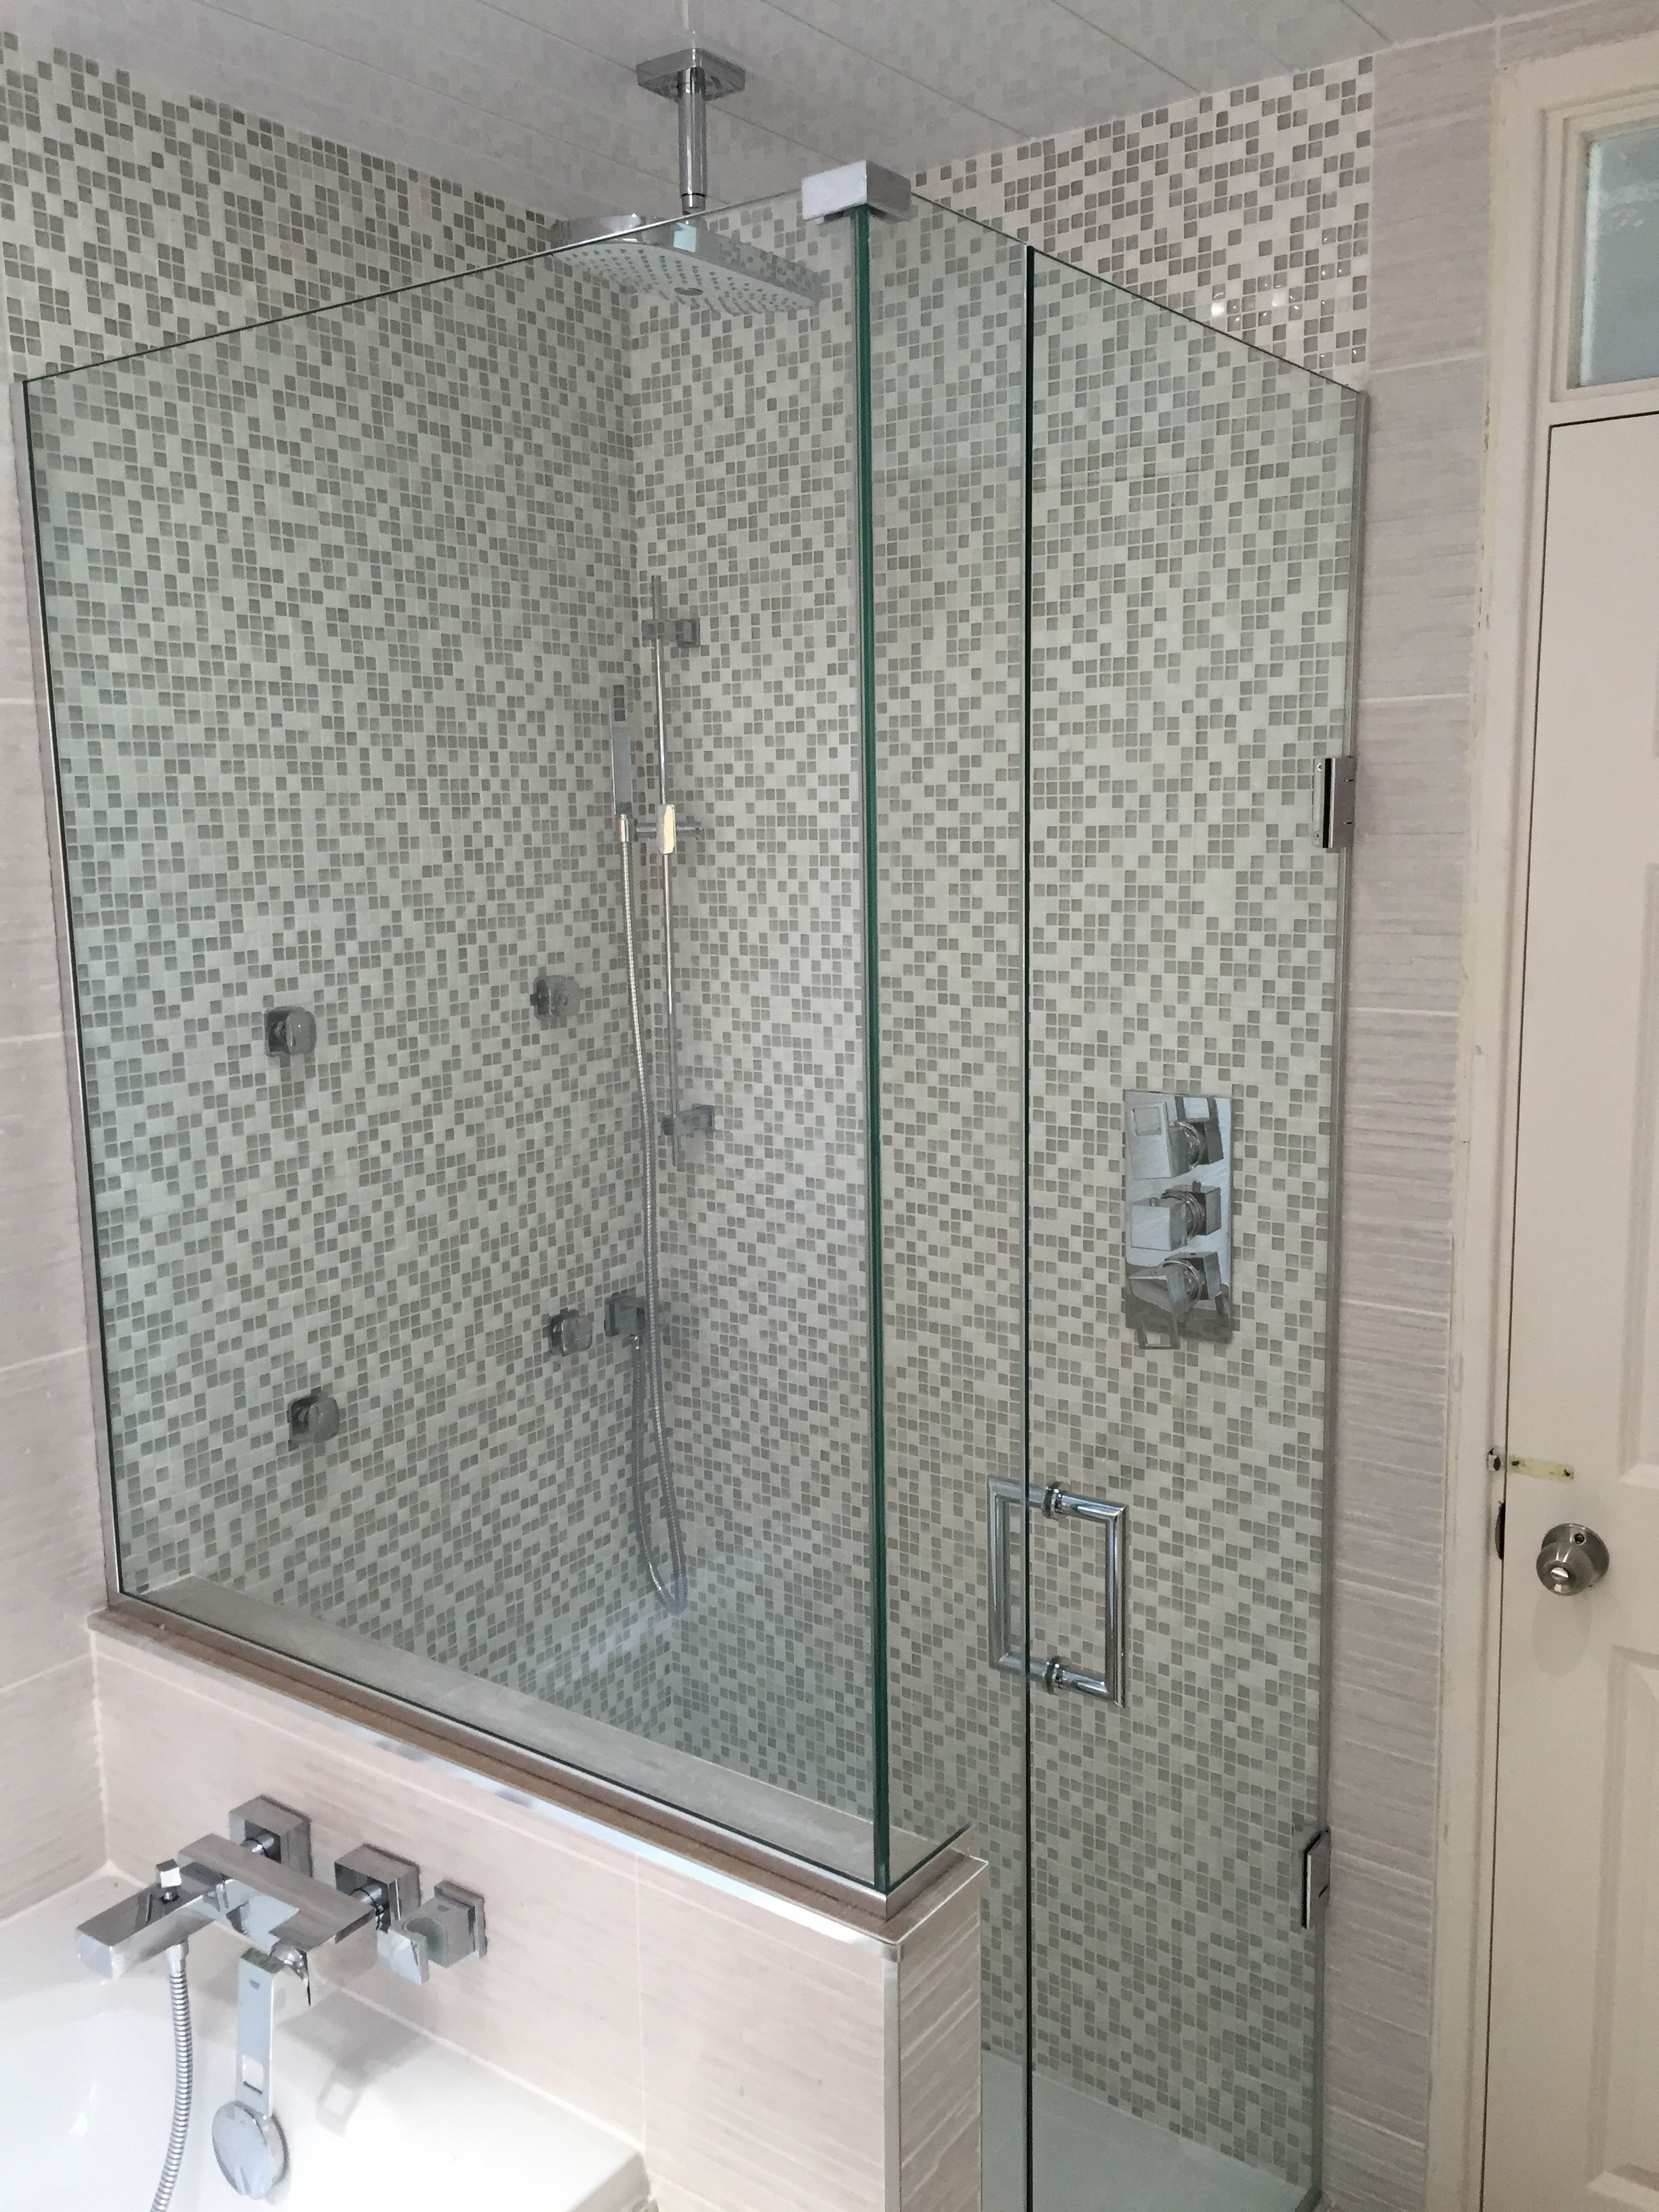 Frameless Made To Measure Shower Enclosure Installed To End Of Bath Over Nib Wall In Middlesbroug Bathroom Wall Panels Bath Shower Enclosures Shower Enclosure